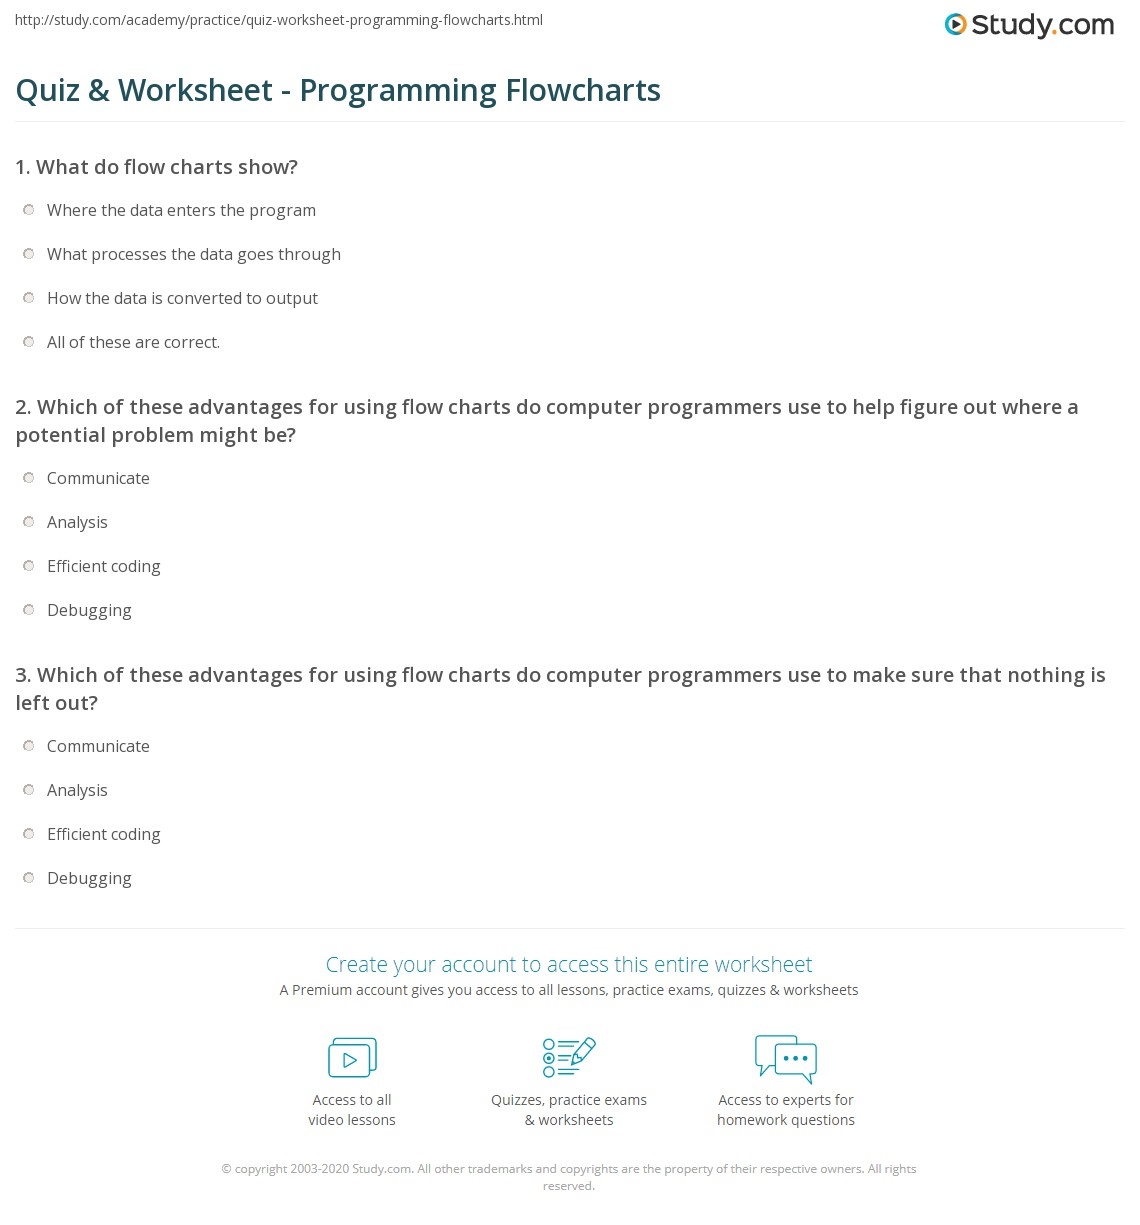 Quiz Worksheet Programming Flowcharts Study